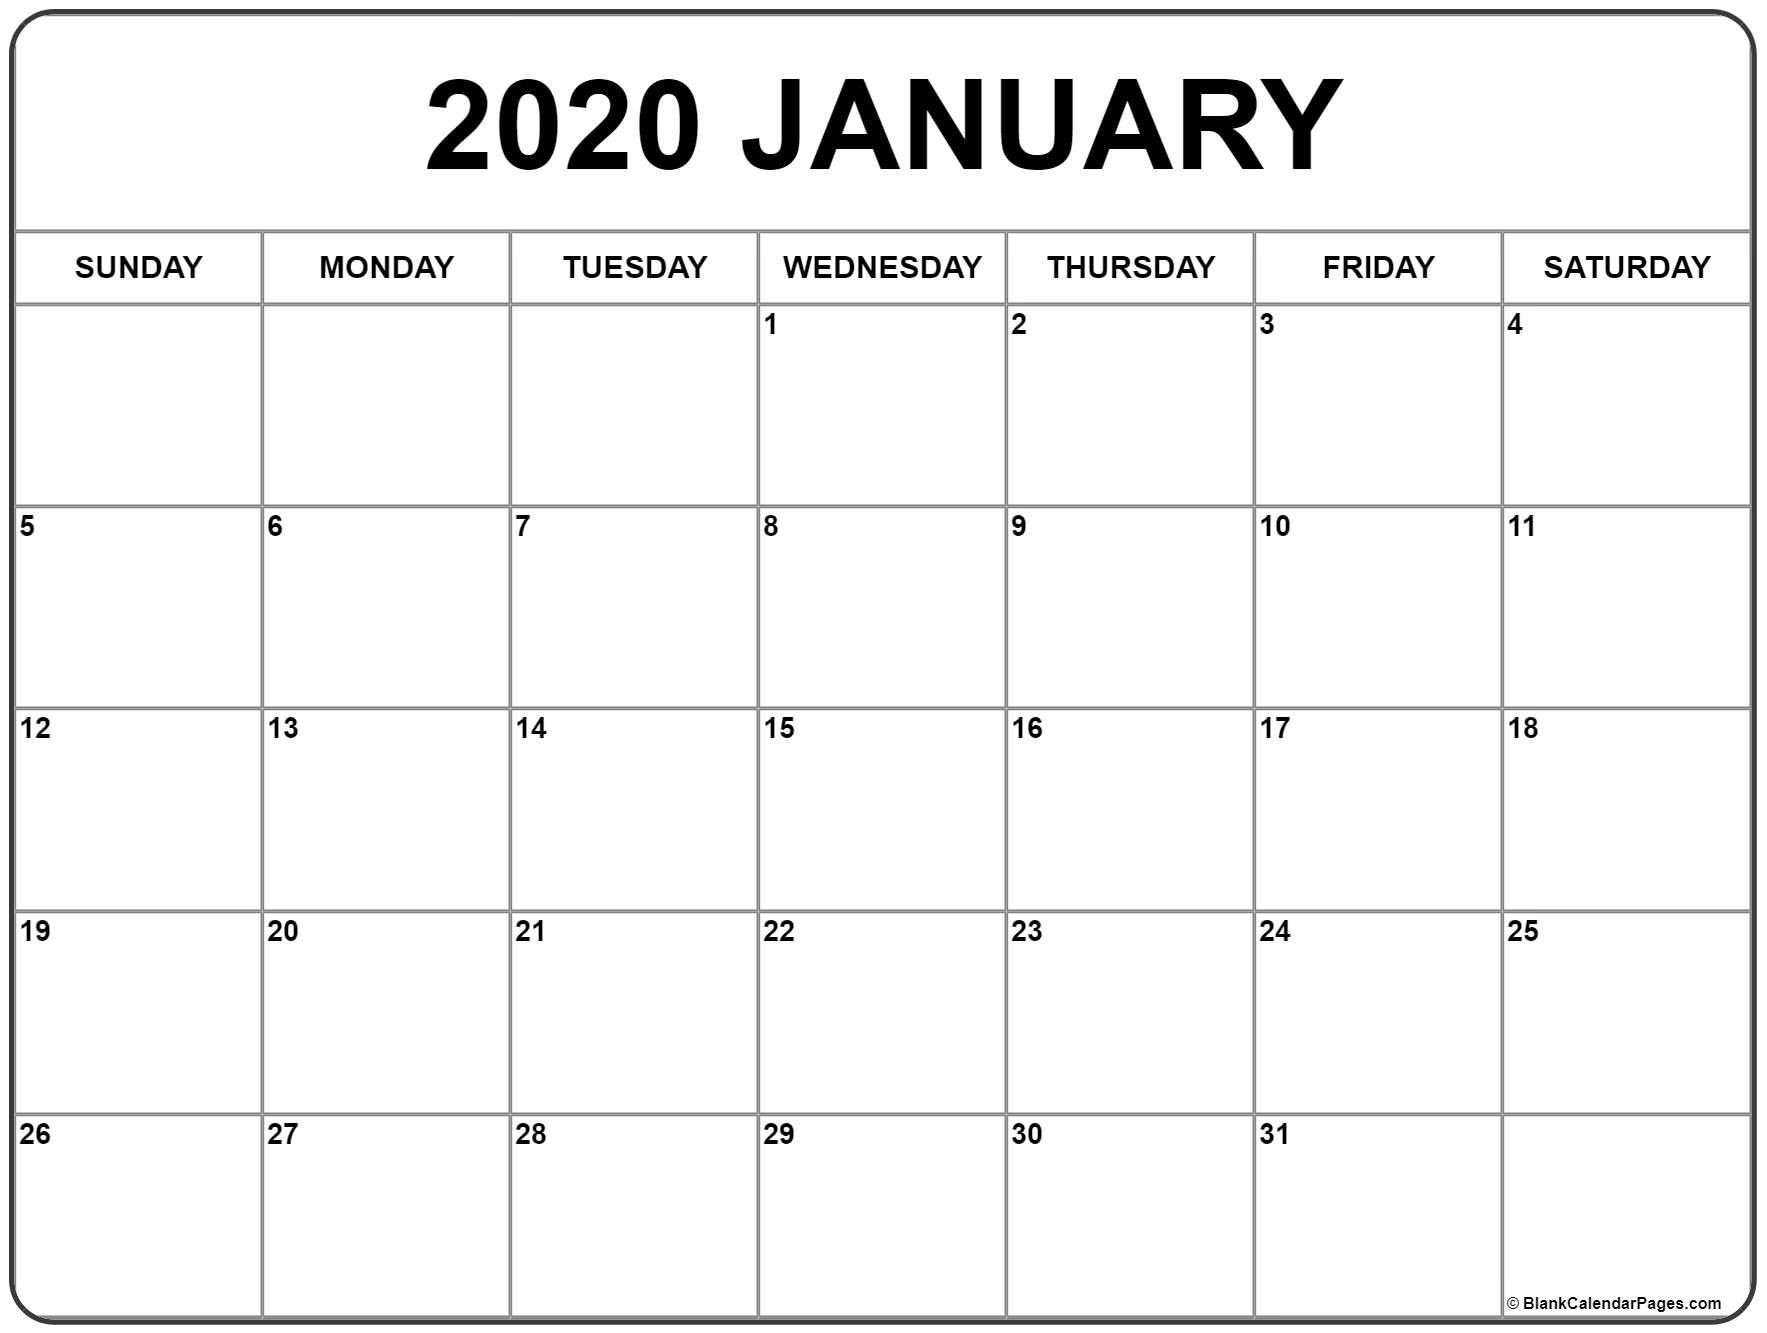 January 2020 Calendar | Free Printable Monthly Calendars-Fre Printable Blank Calander Monthly Pages